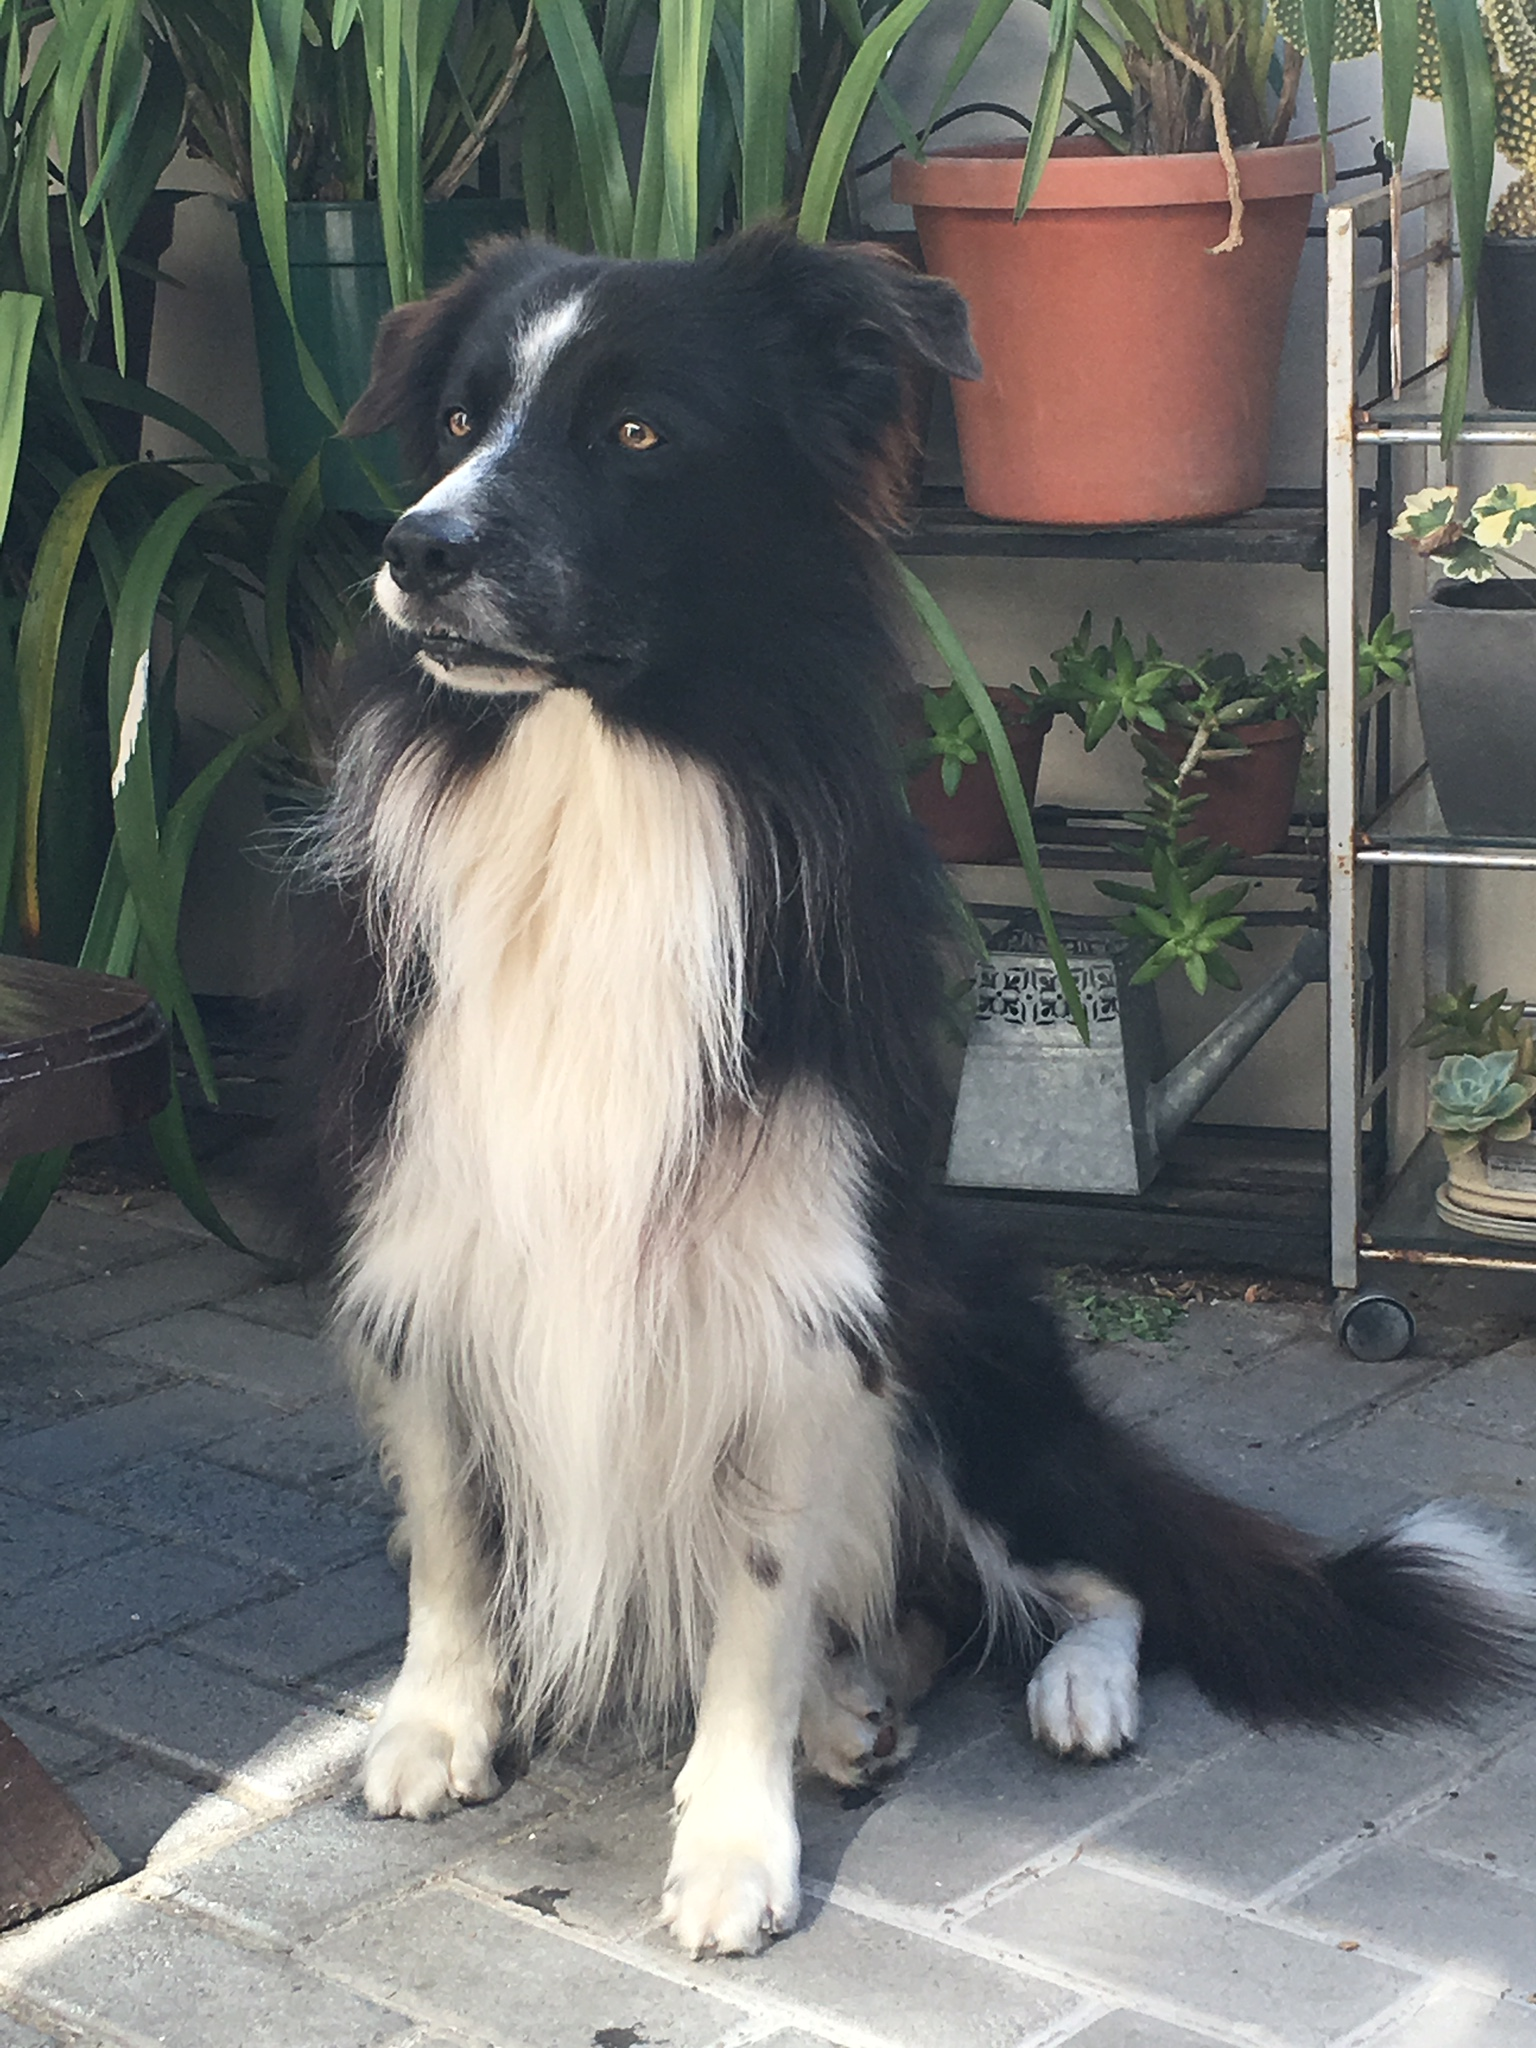 lastly, shaggy, our wonderful Border Collie  loves to meet with guests in the hope that they will throw a ball for him to fetch!